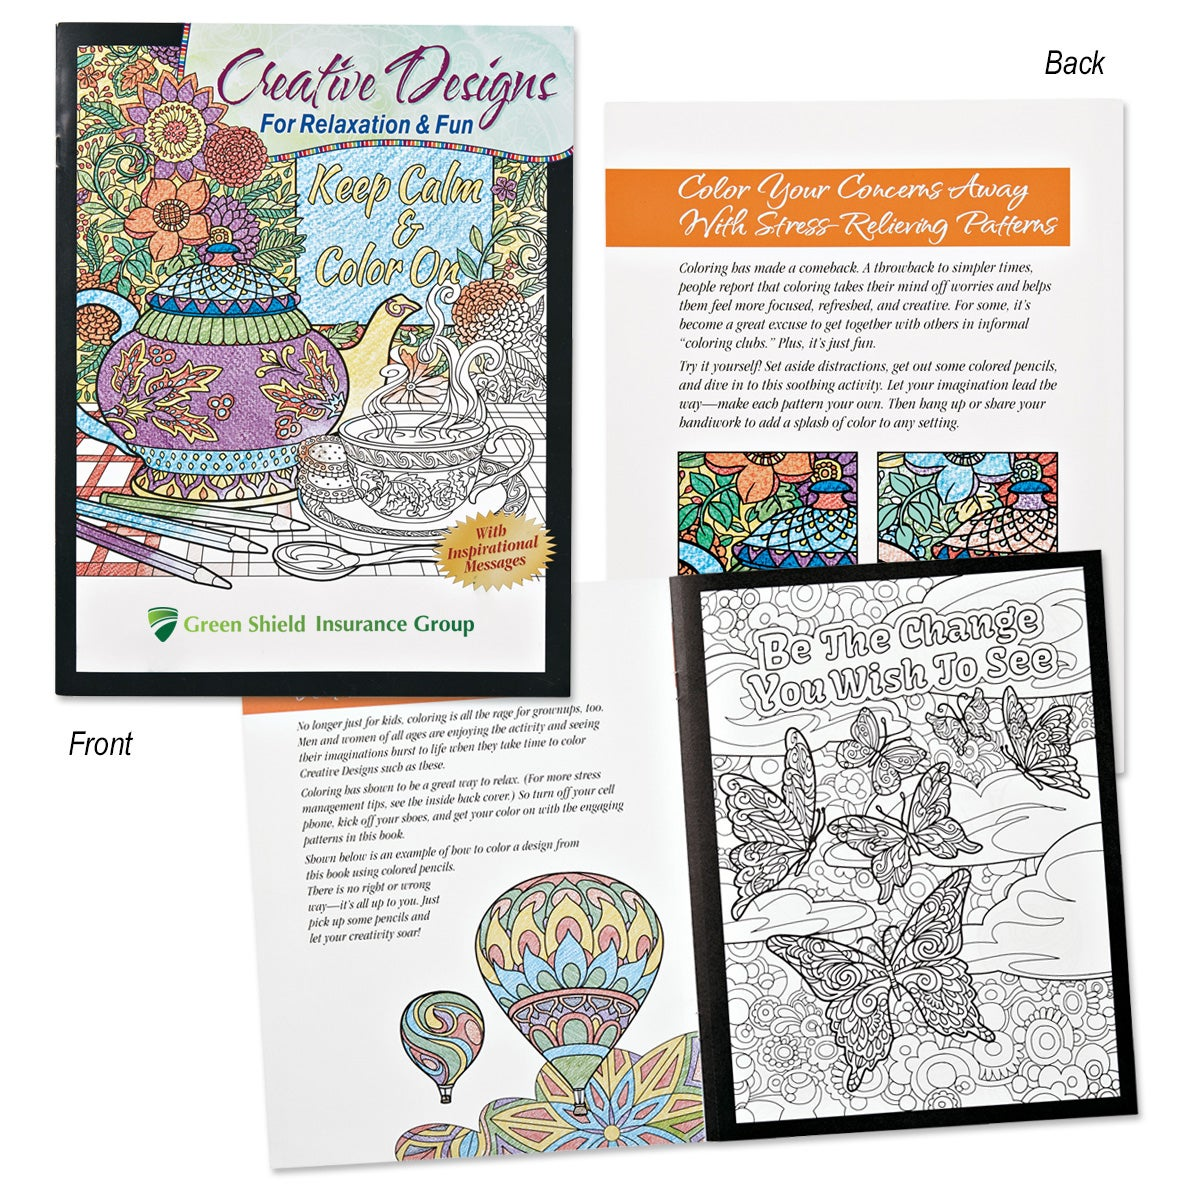 Creative Designs For Relaxation And Fun Adult Coloring